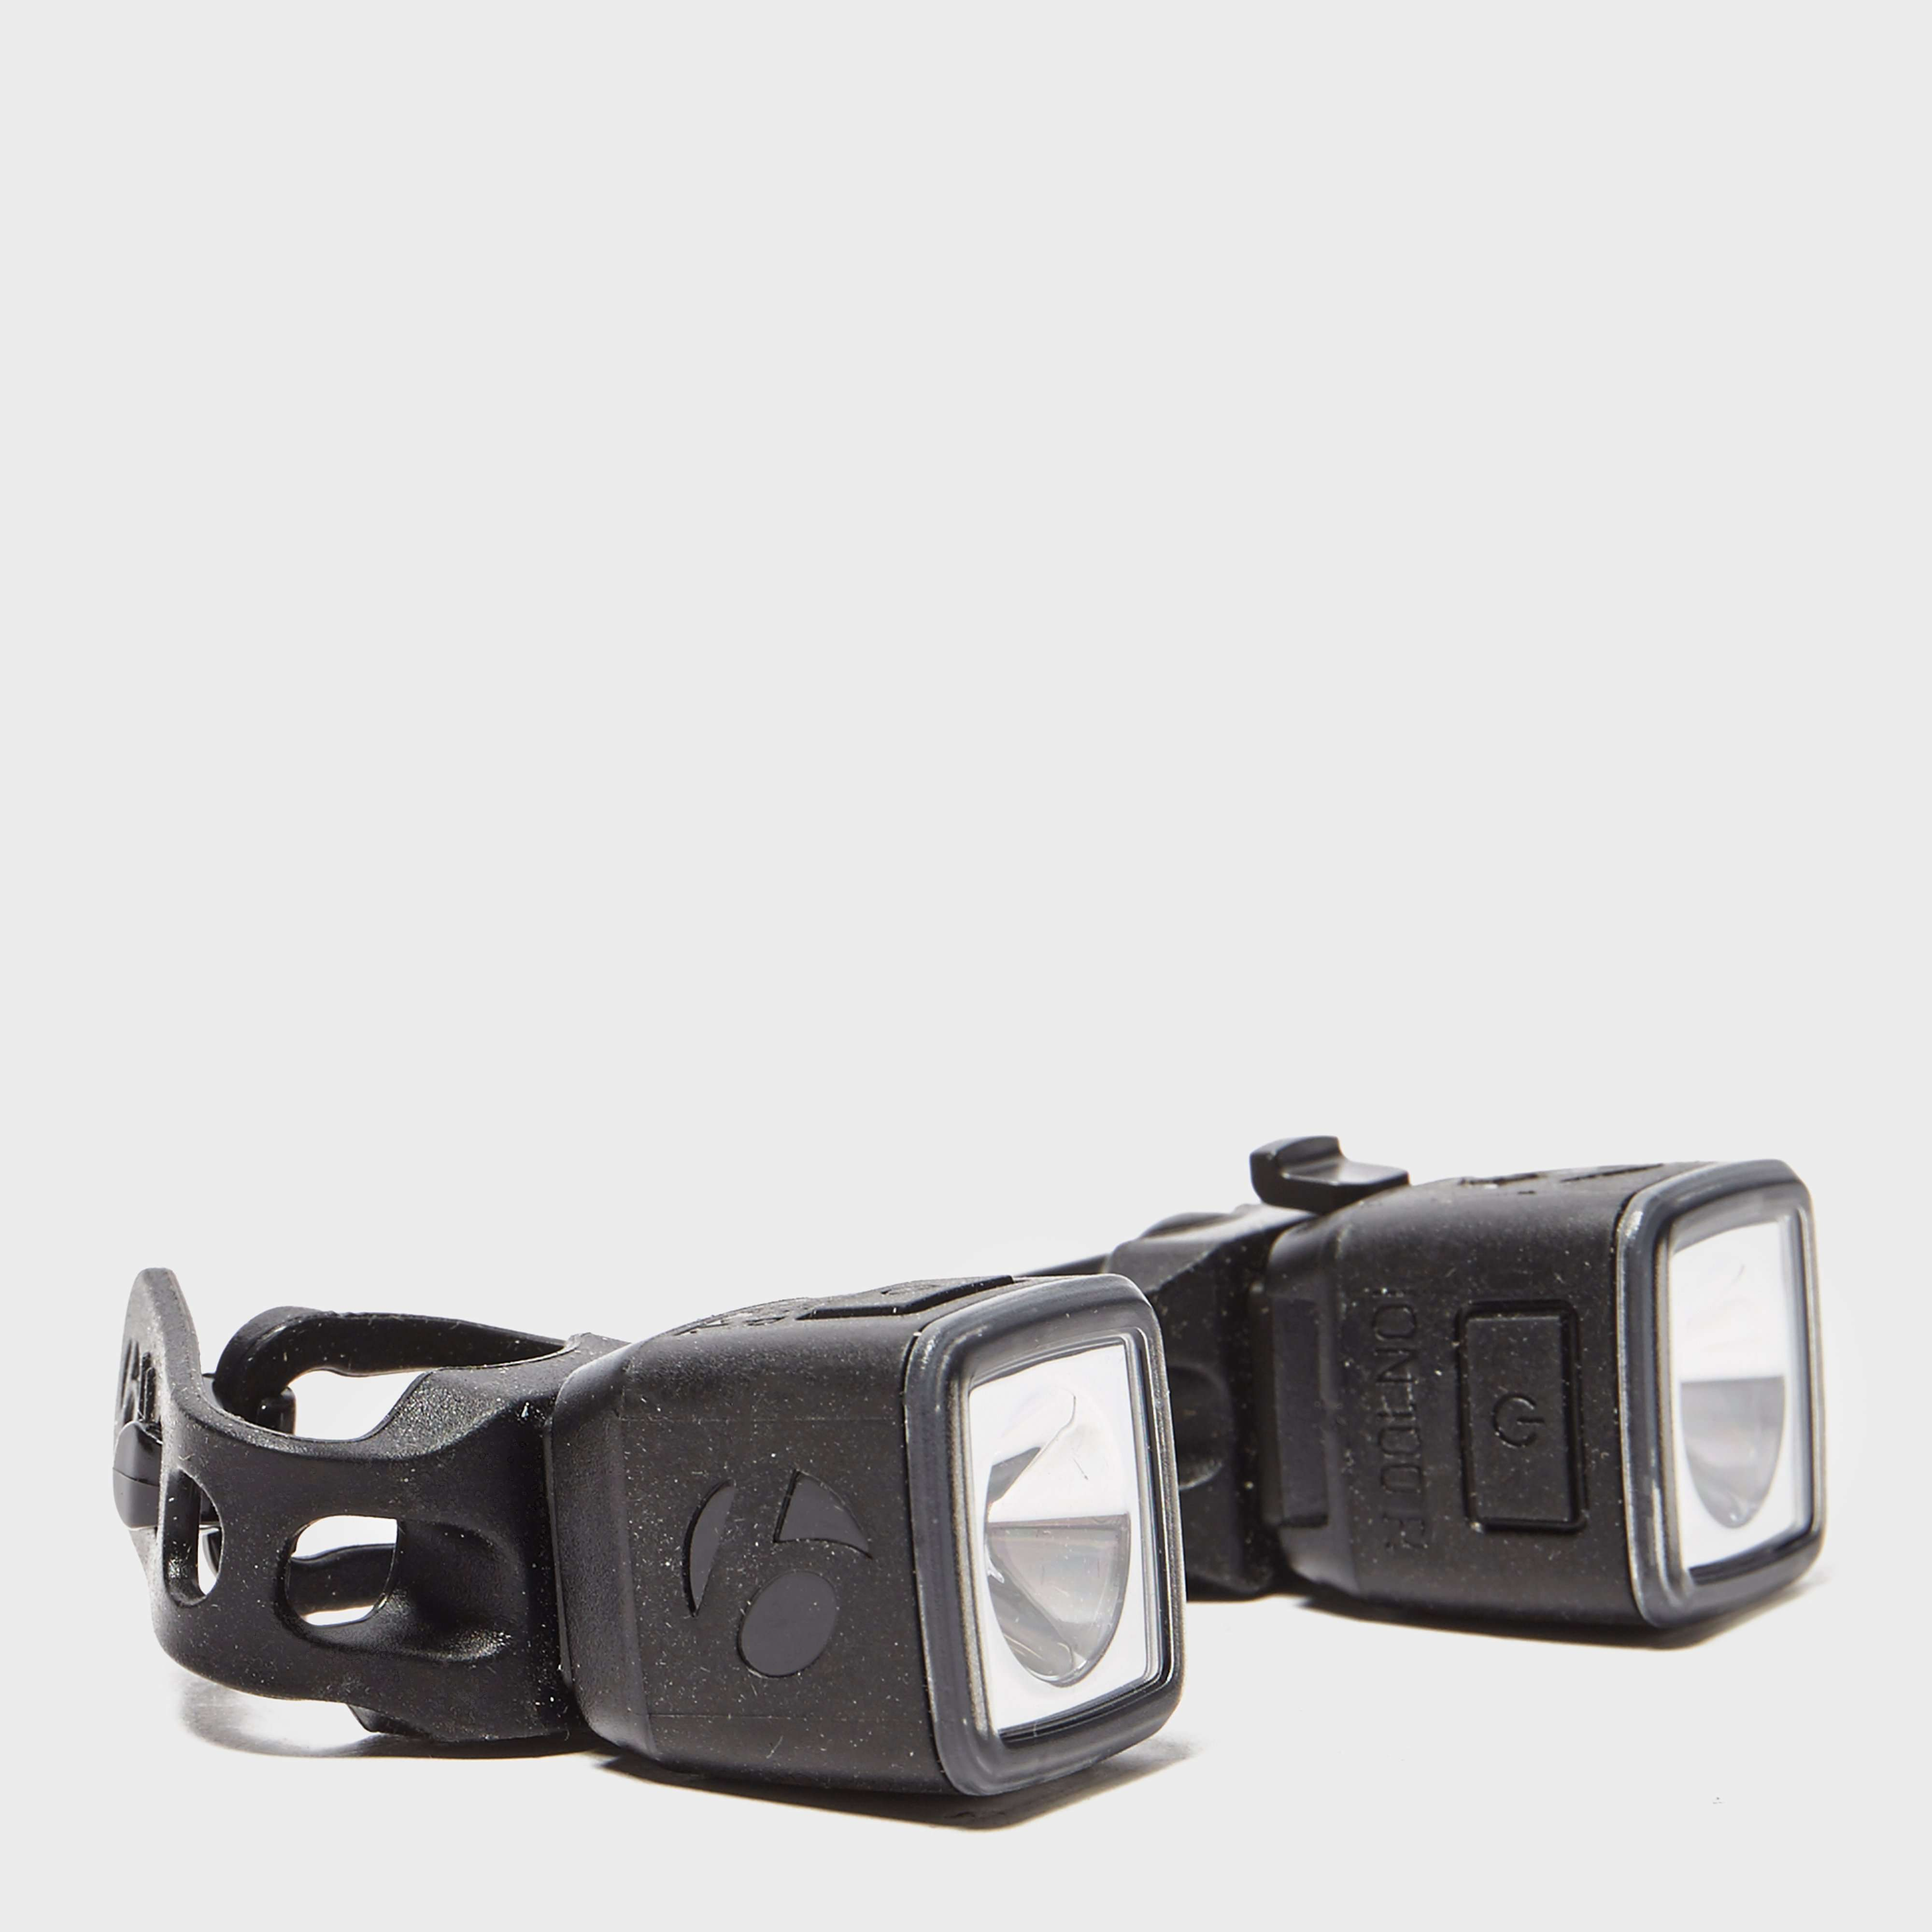 BONTRAGER Ion 100 R and Flare R CityCycle Light Set